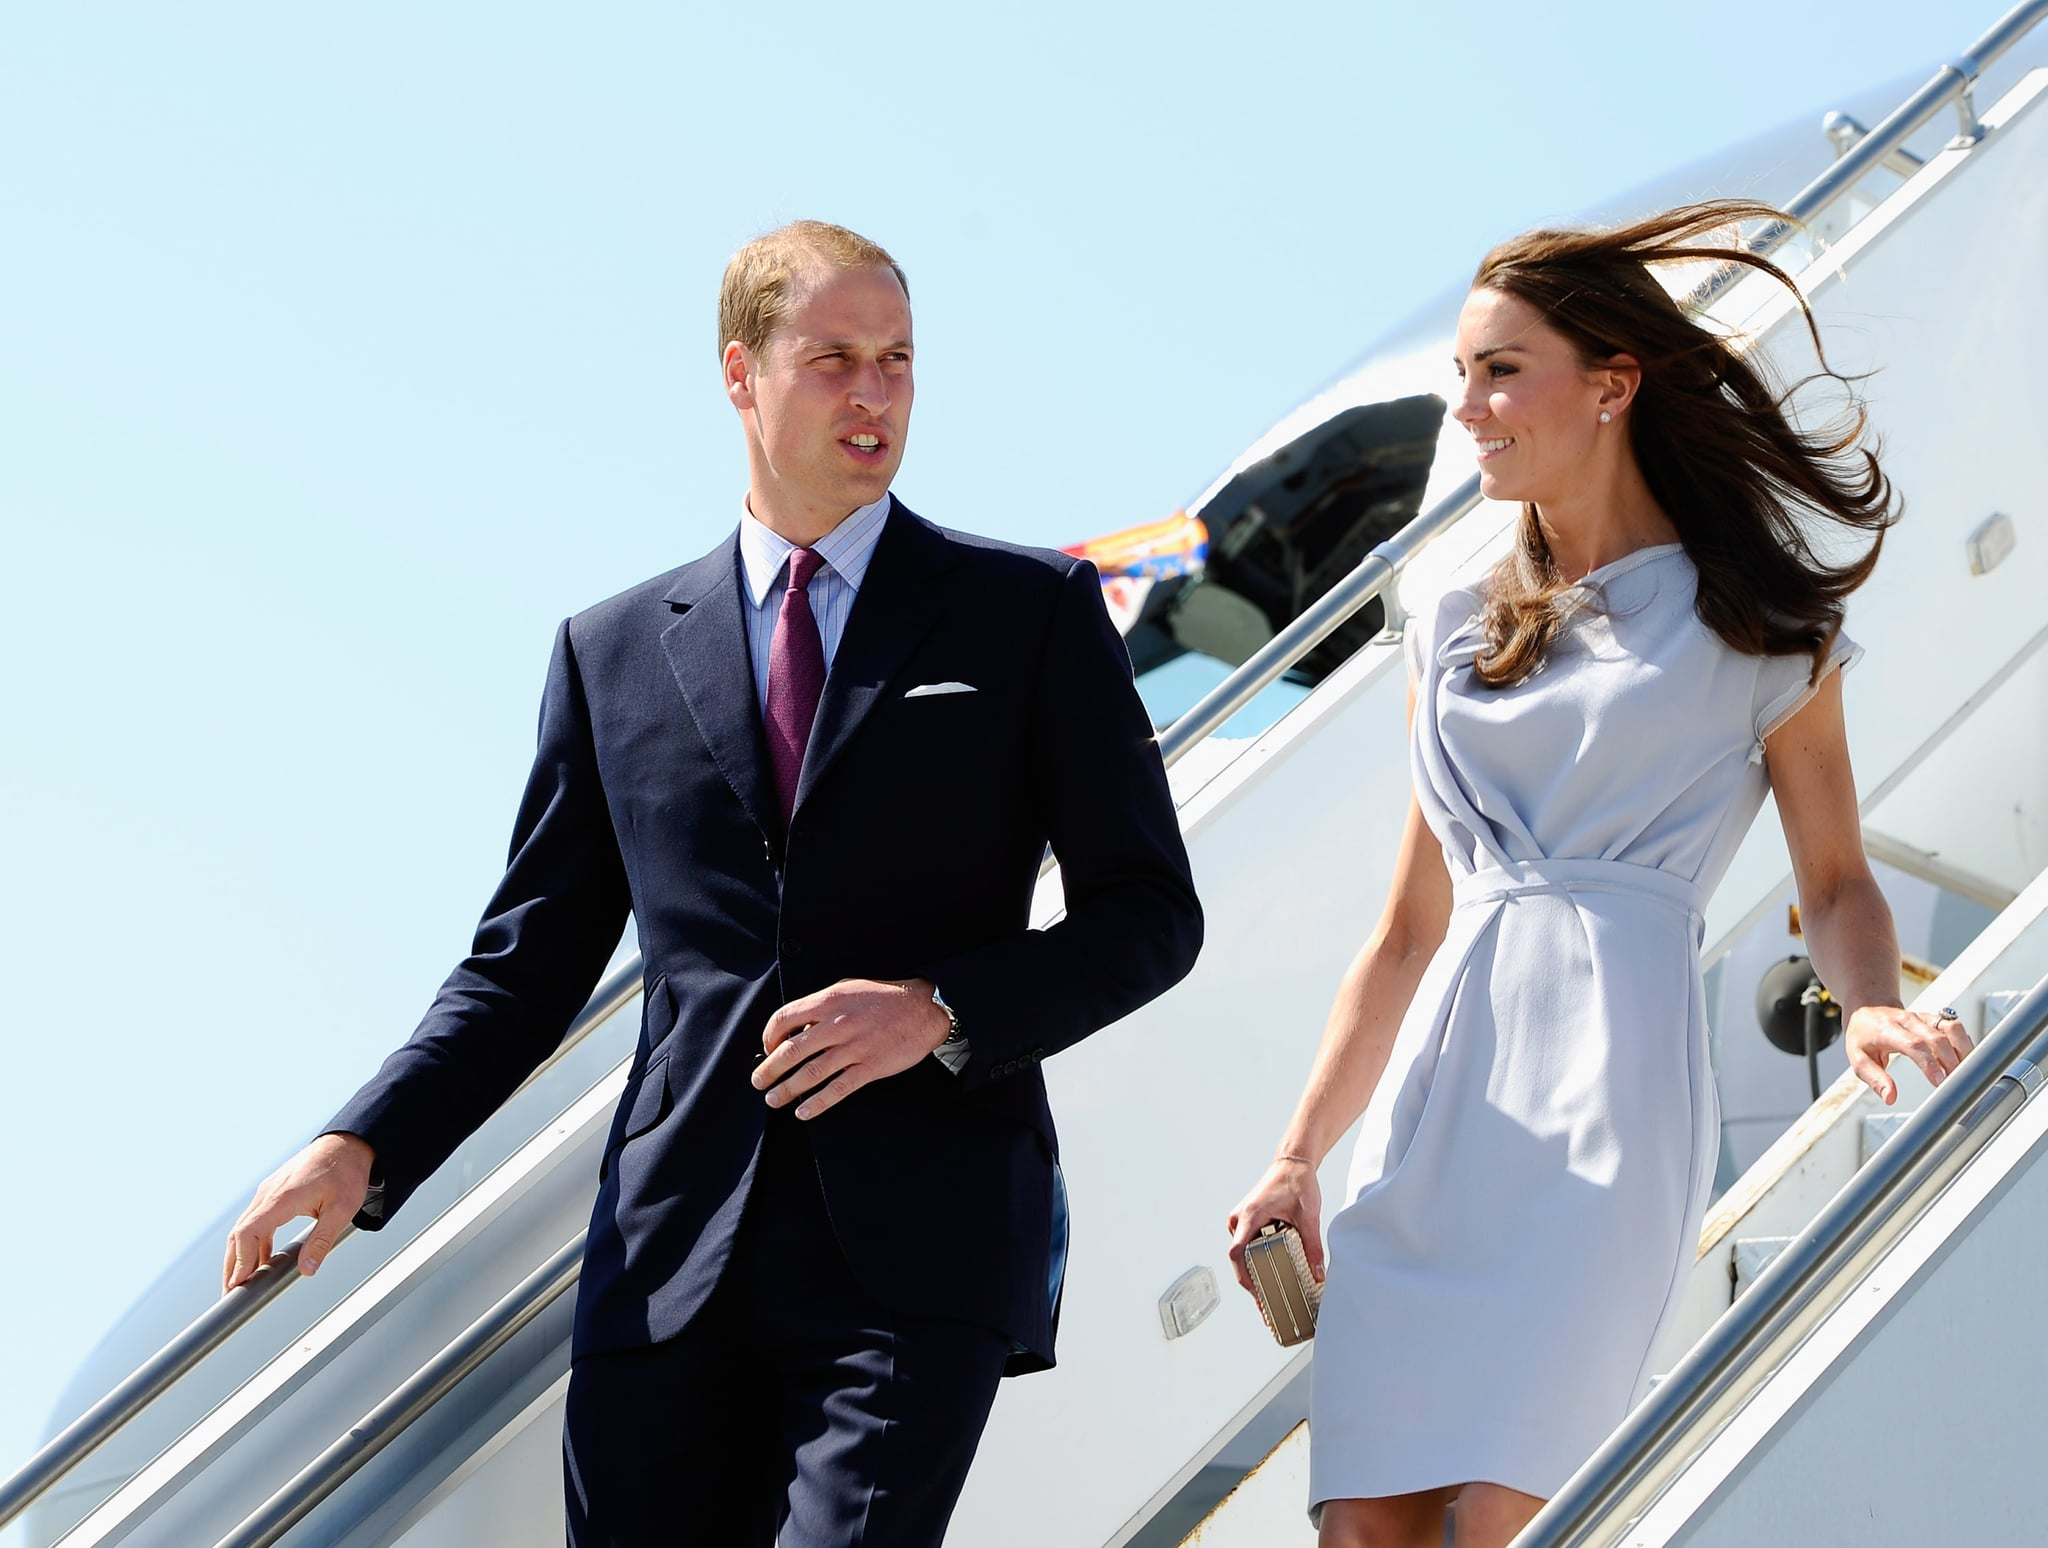 Prince William looked dapper in a navy suit next to Kate Middleton in lavender.